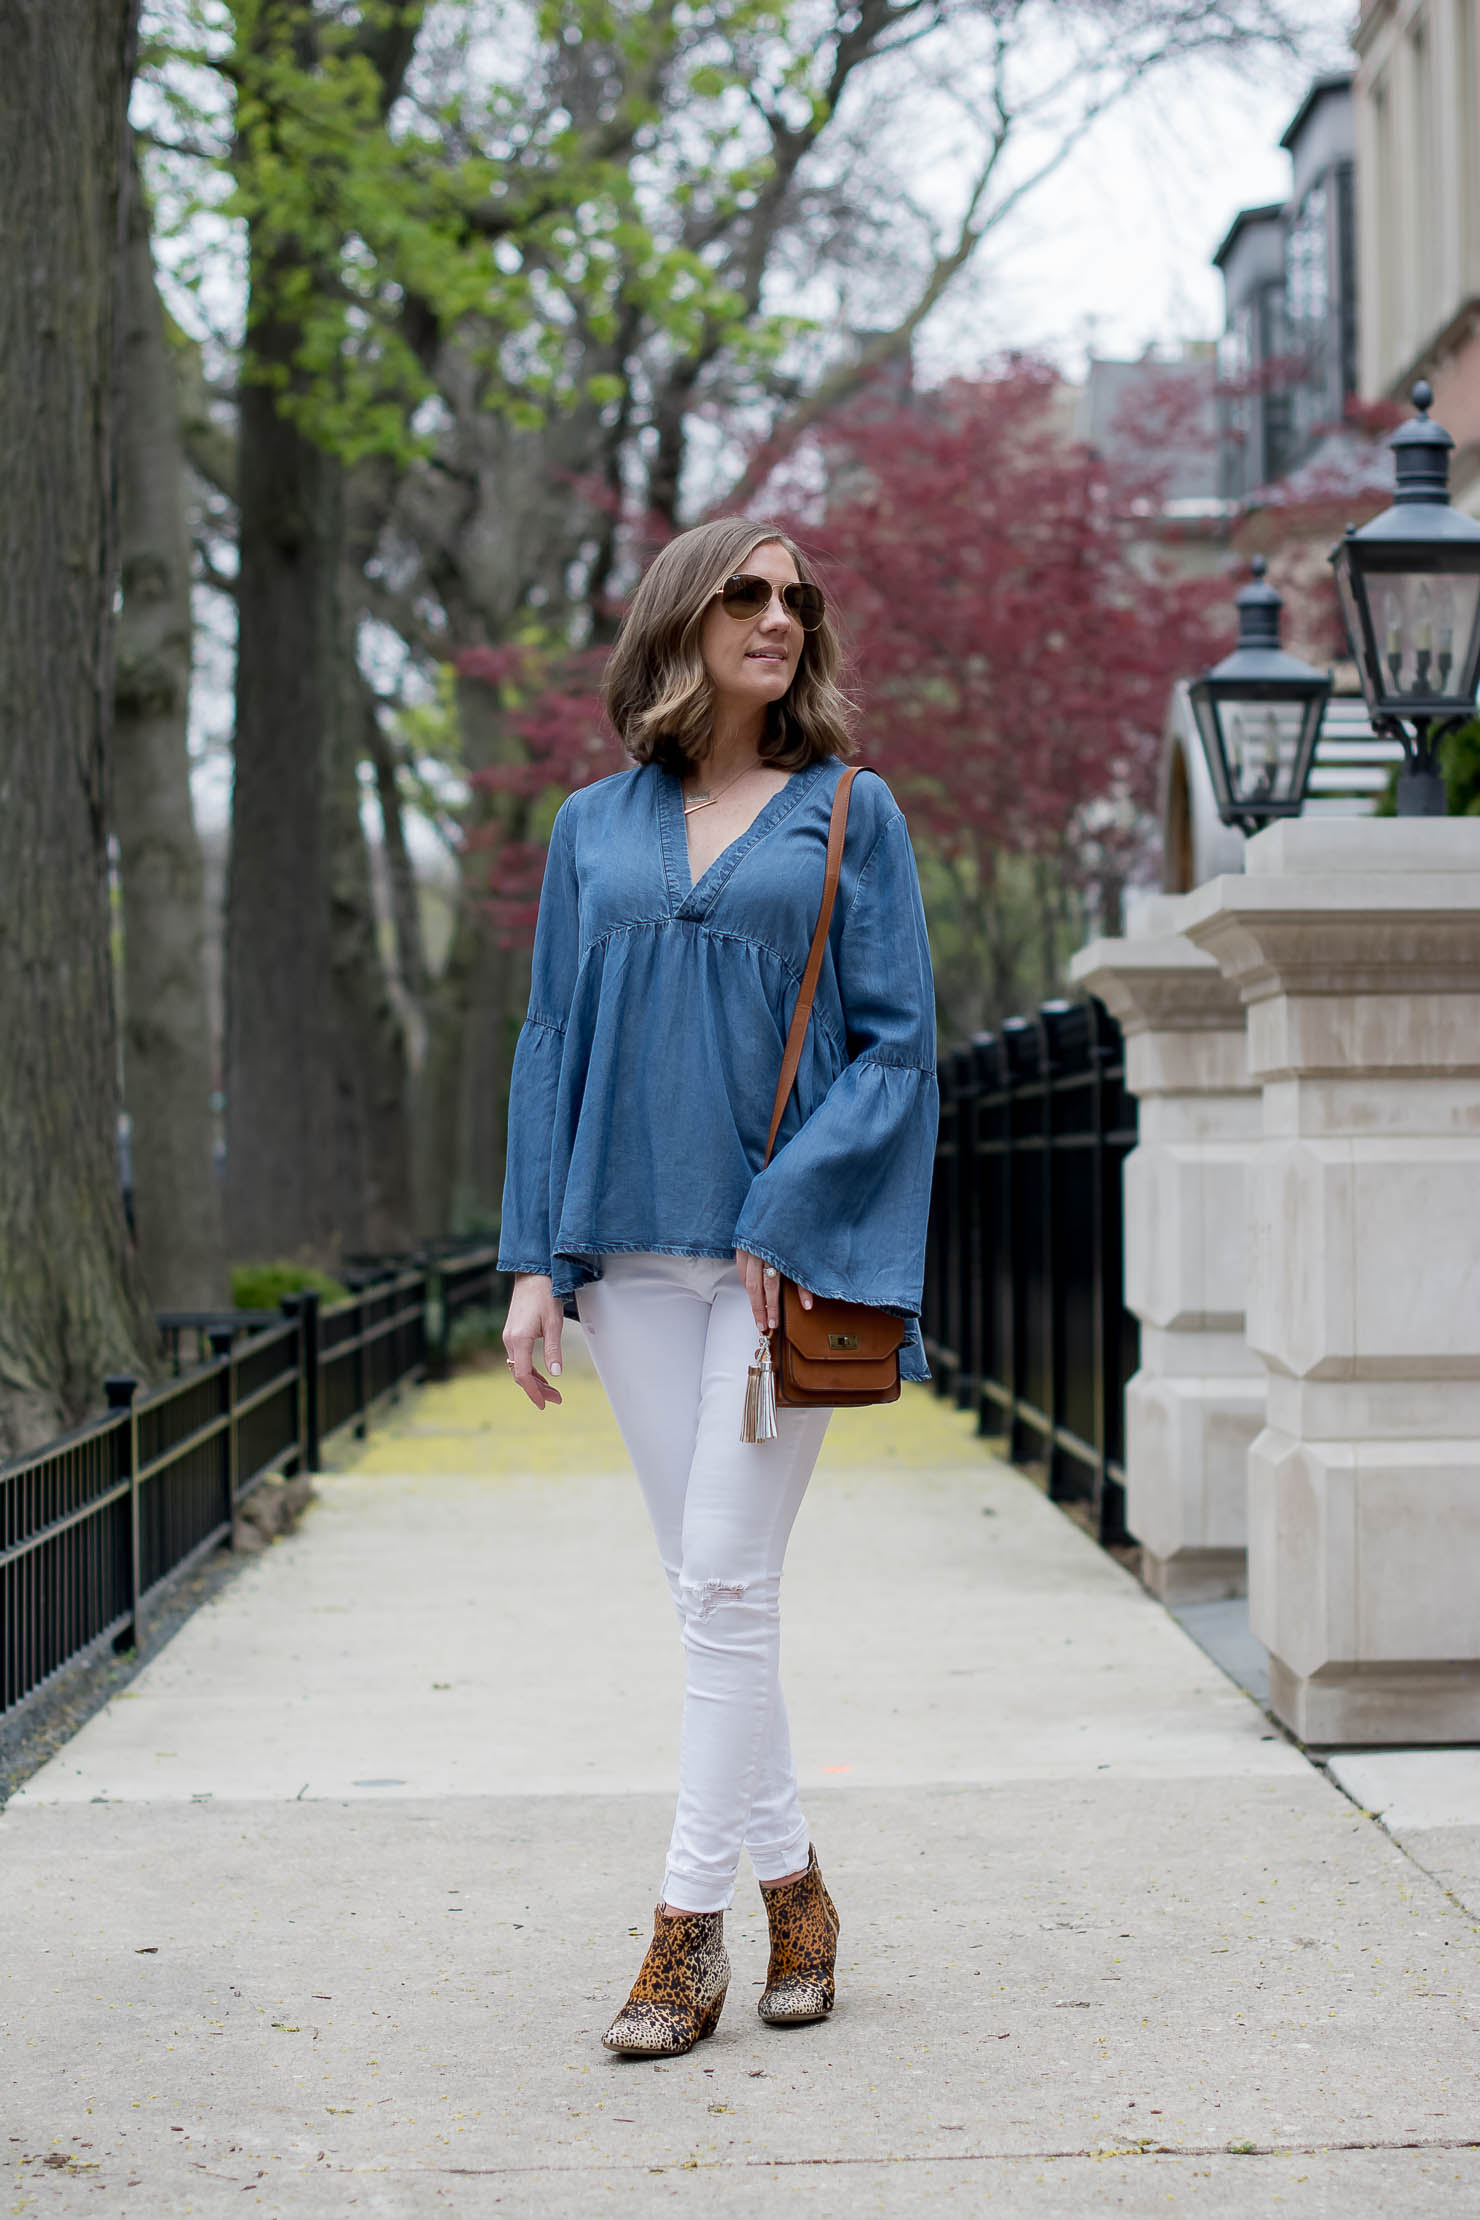 transitioning-white-jeans-for-fall-hm-denim-bell-sleeve-top-matisse-leopard-booties-metallic-bag-tassel-charms-3